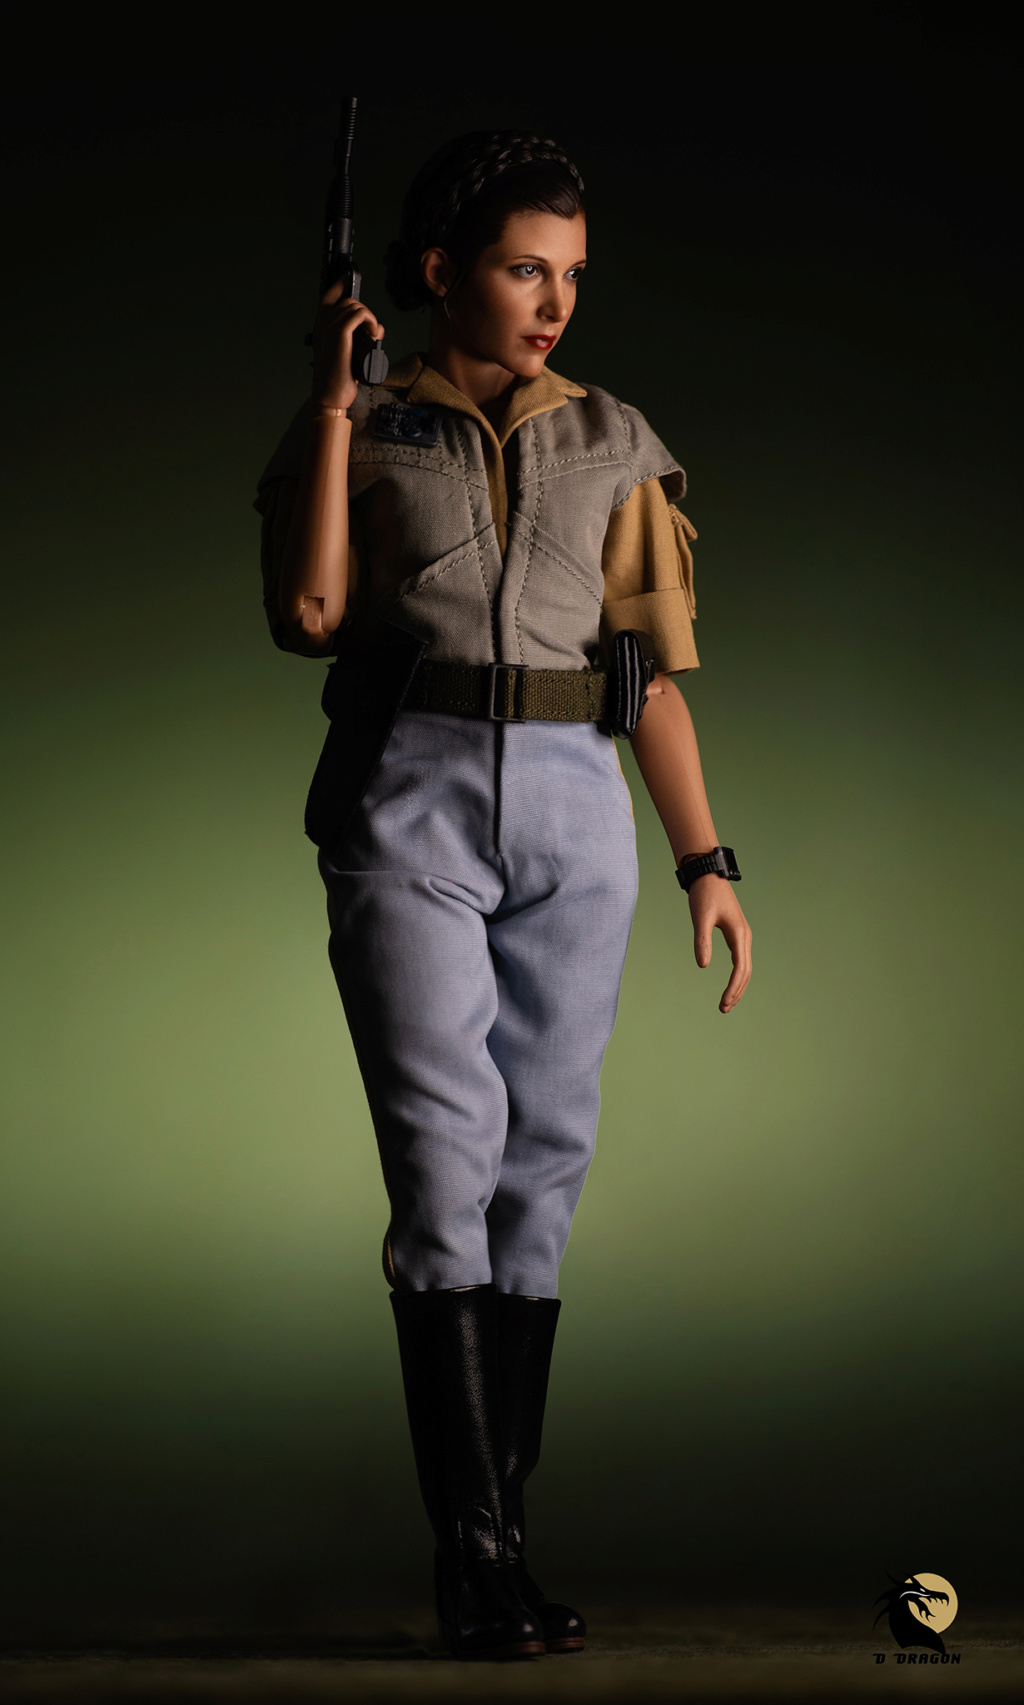 Endor Leia - NEW PRODUCT: HOT TOYS: STAR WARS: RETURN OF THE JEDI PRINCESS LEIA AND WICKET 1/6TH SCALE COLLECTIBLE FIGURES SET Endor_10